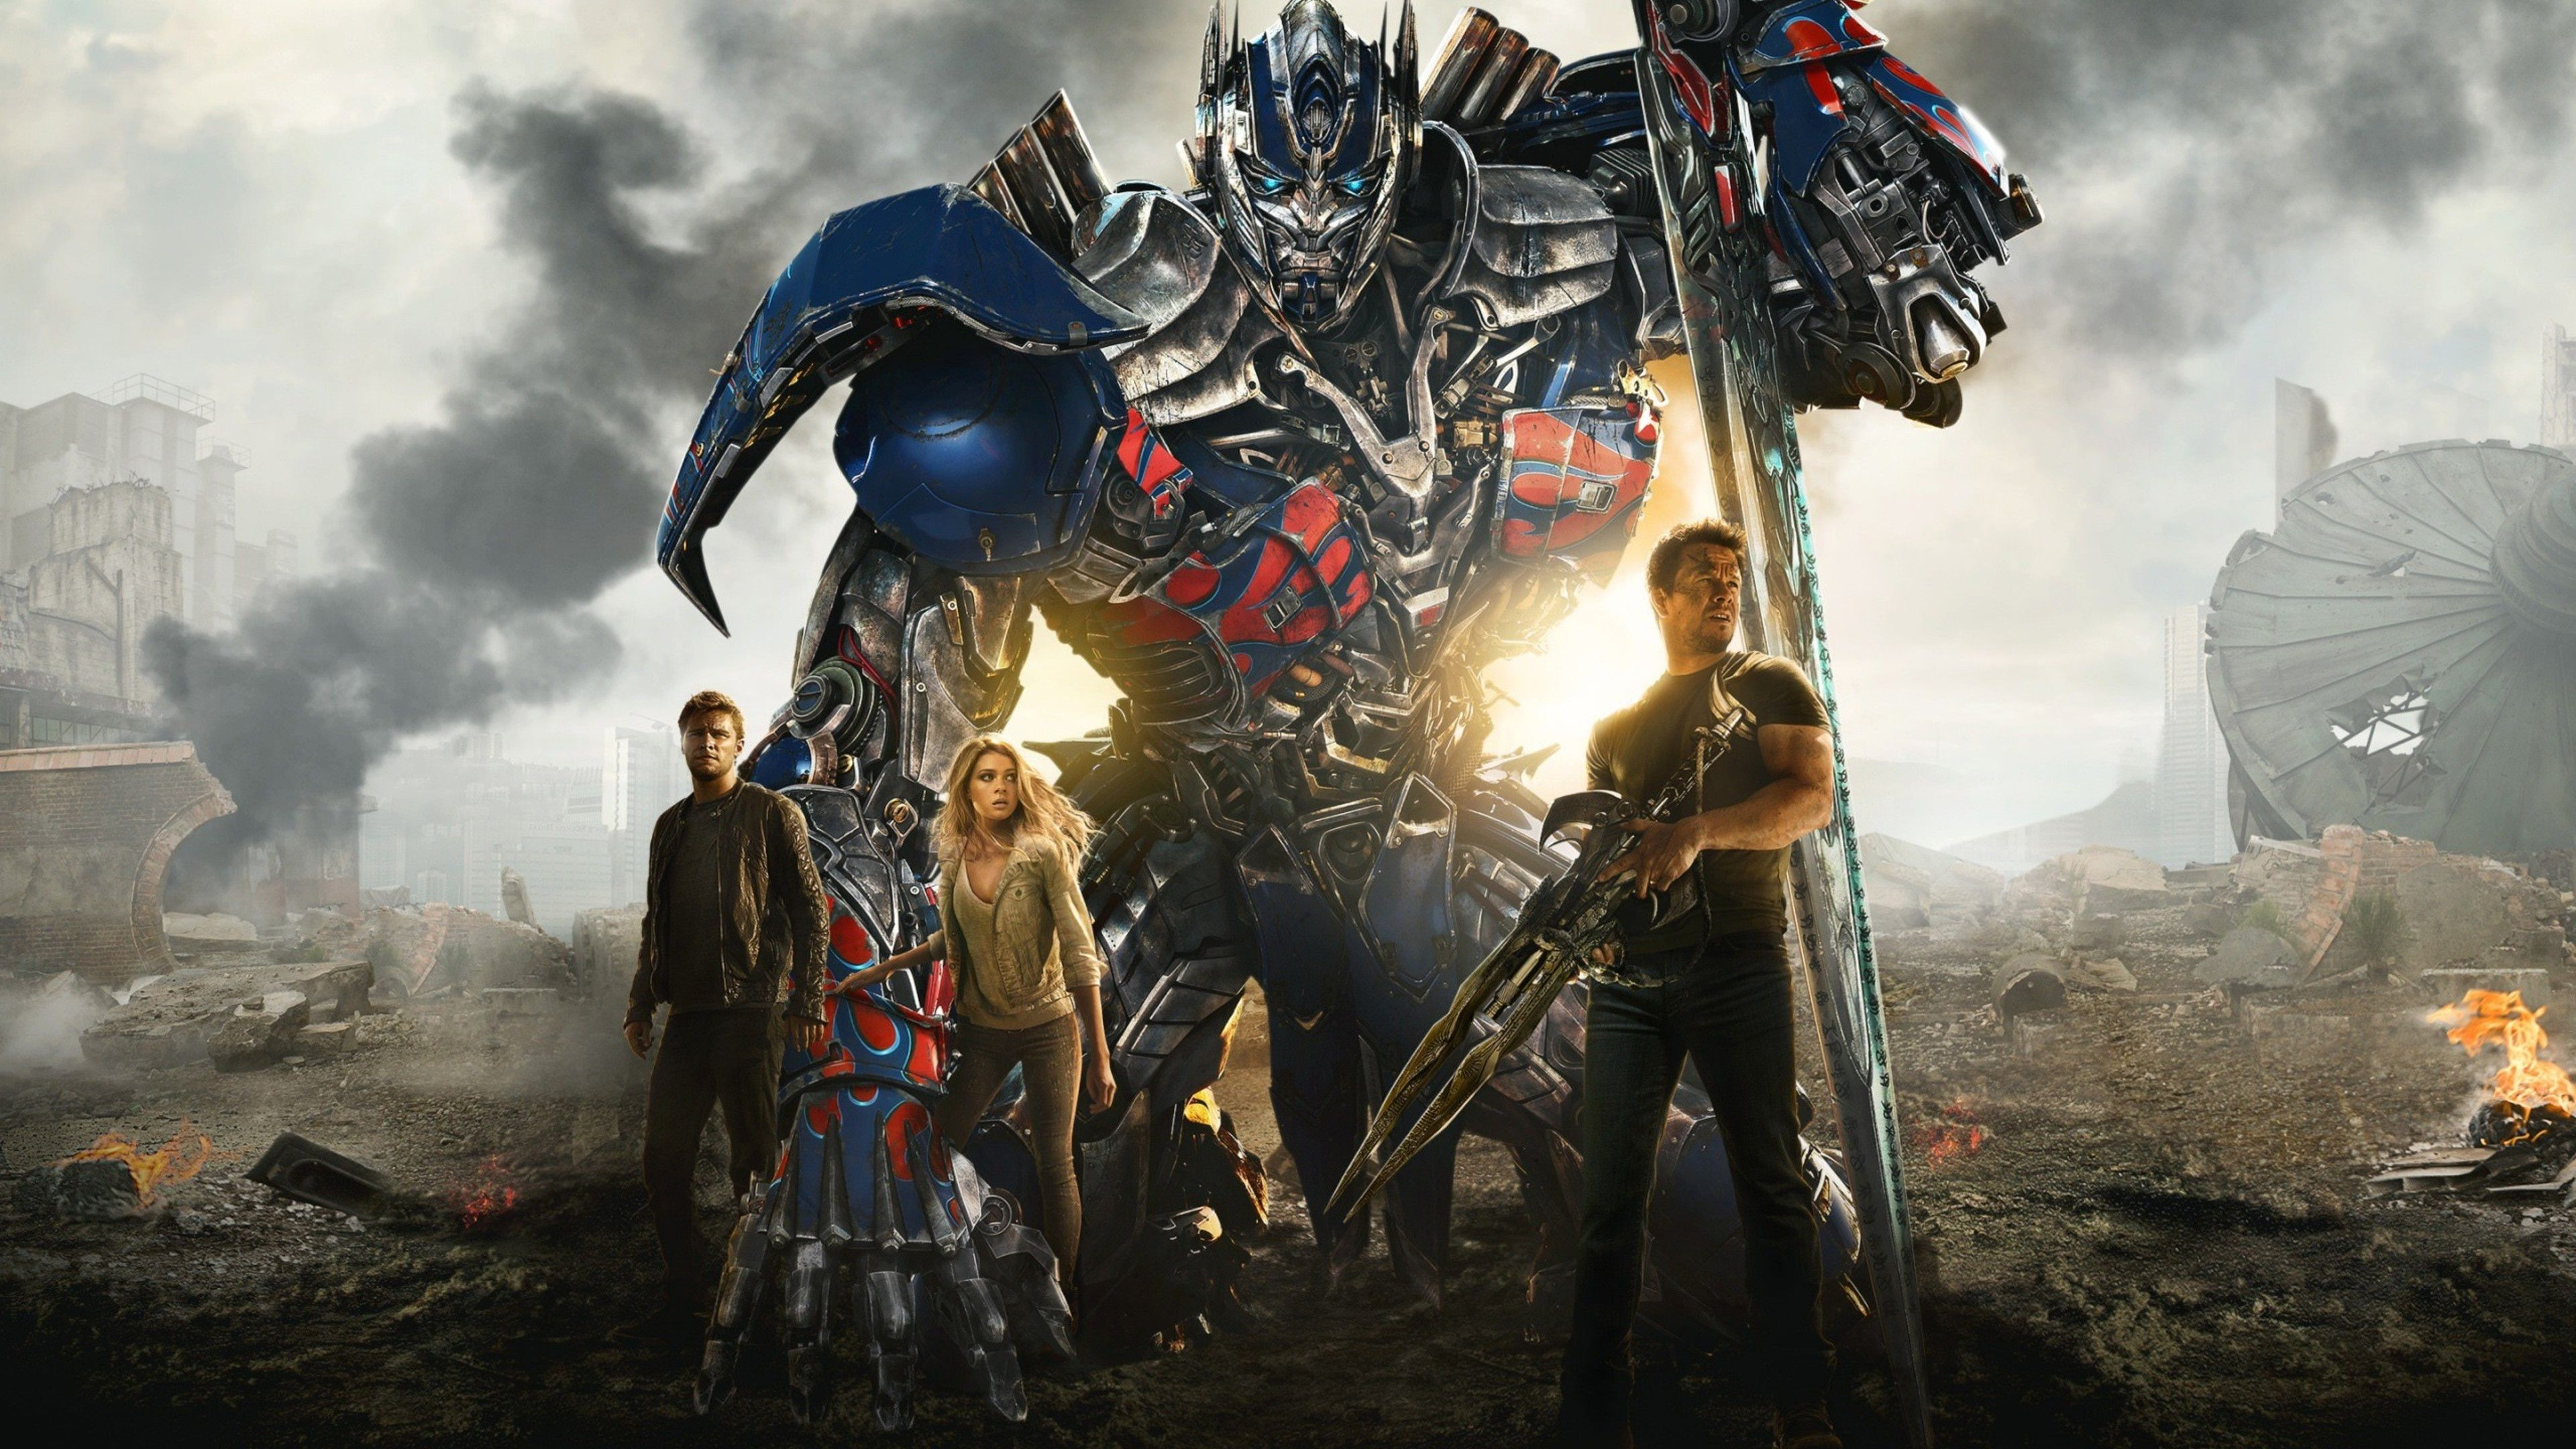 3840x2160 Transformers 4 Age of Extinction Movie, HD Movies, 4k Wallpapers ...